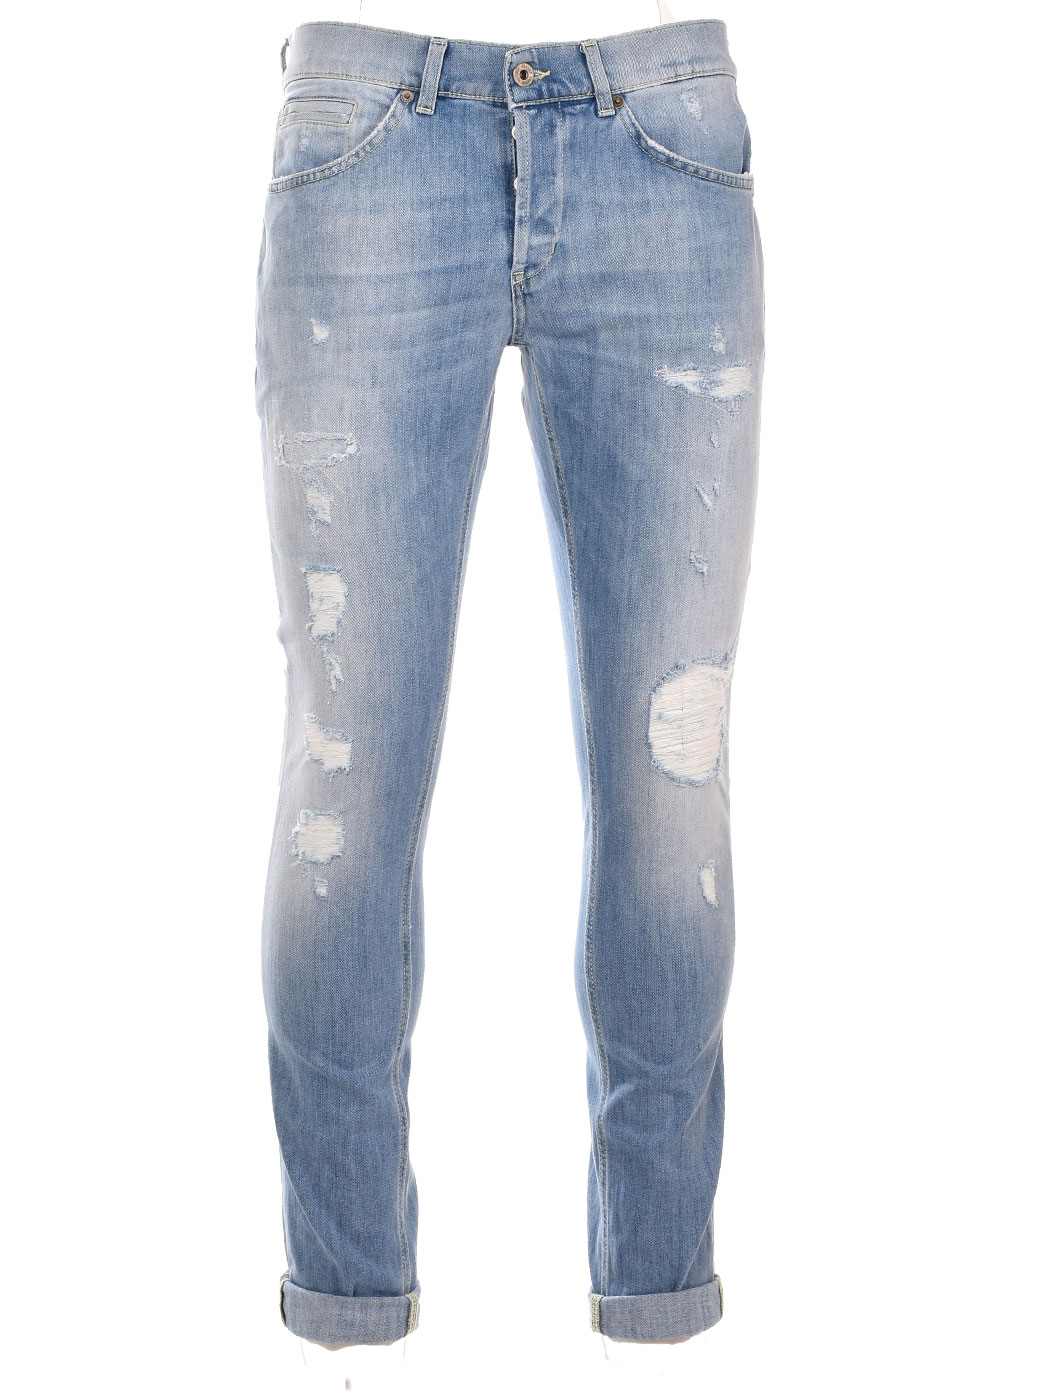 DONDUP UP232 DU800 JEANS